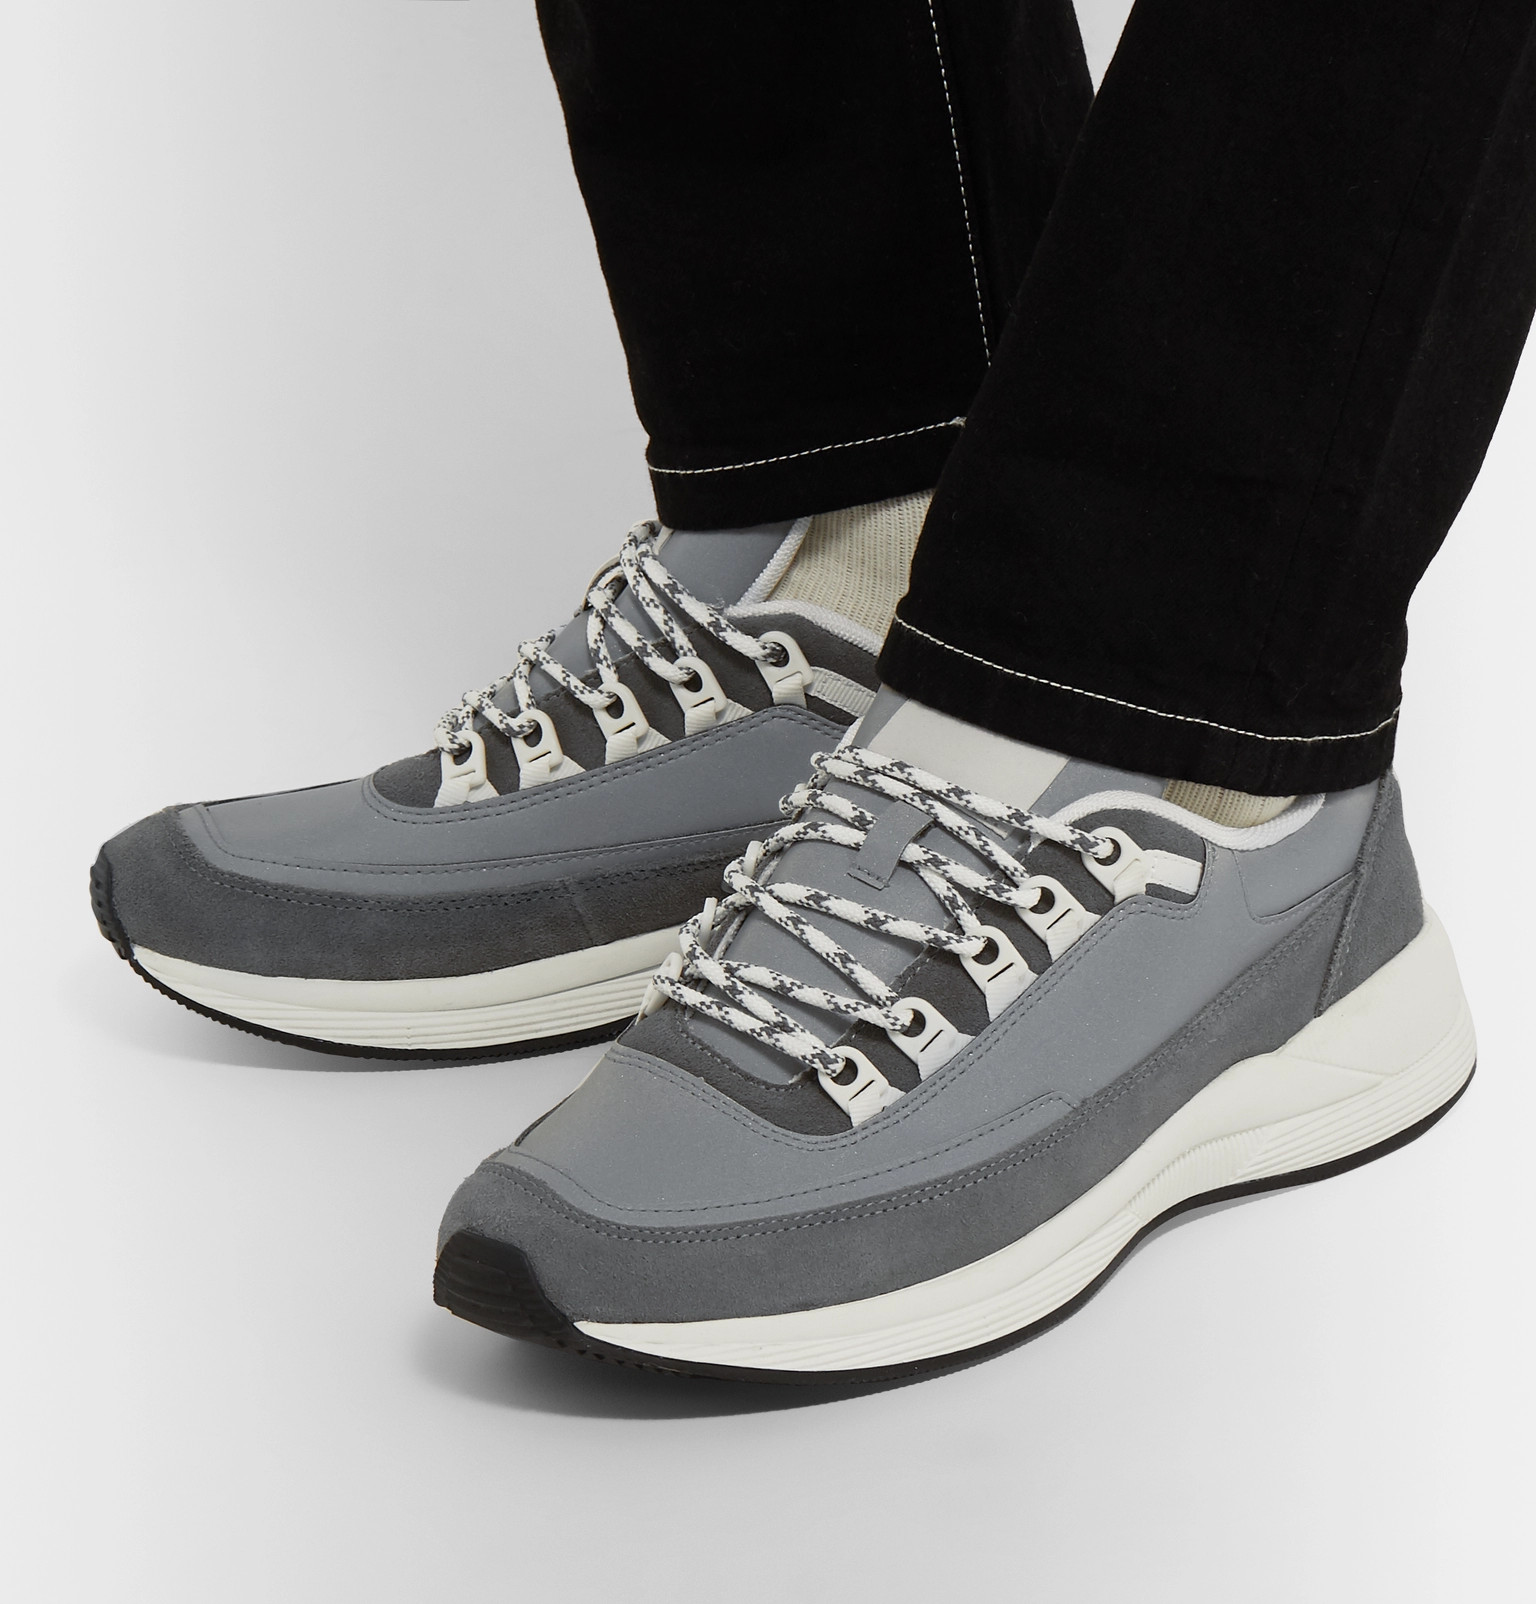 d4157f59423e A.P.C. - Techno Homme Reflective-Panelled Suede and Nylon Sneakers